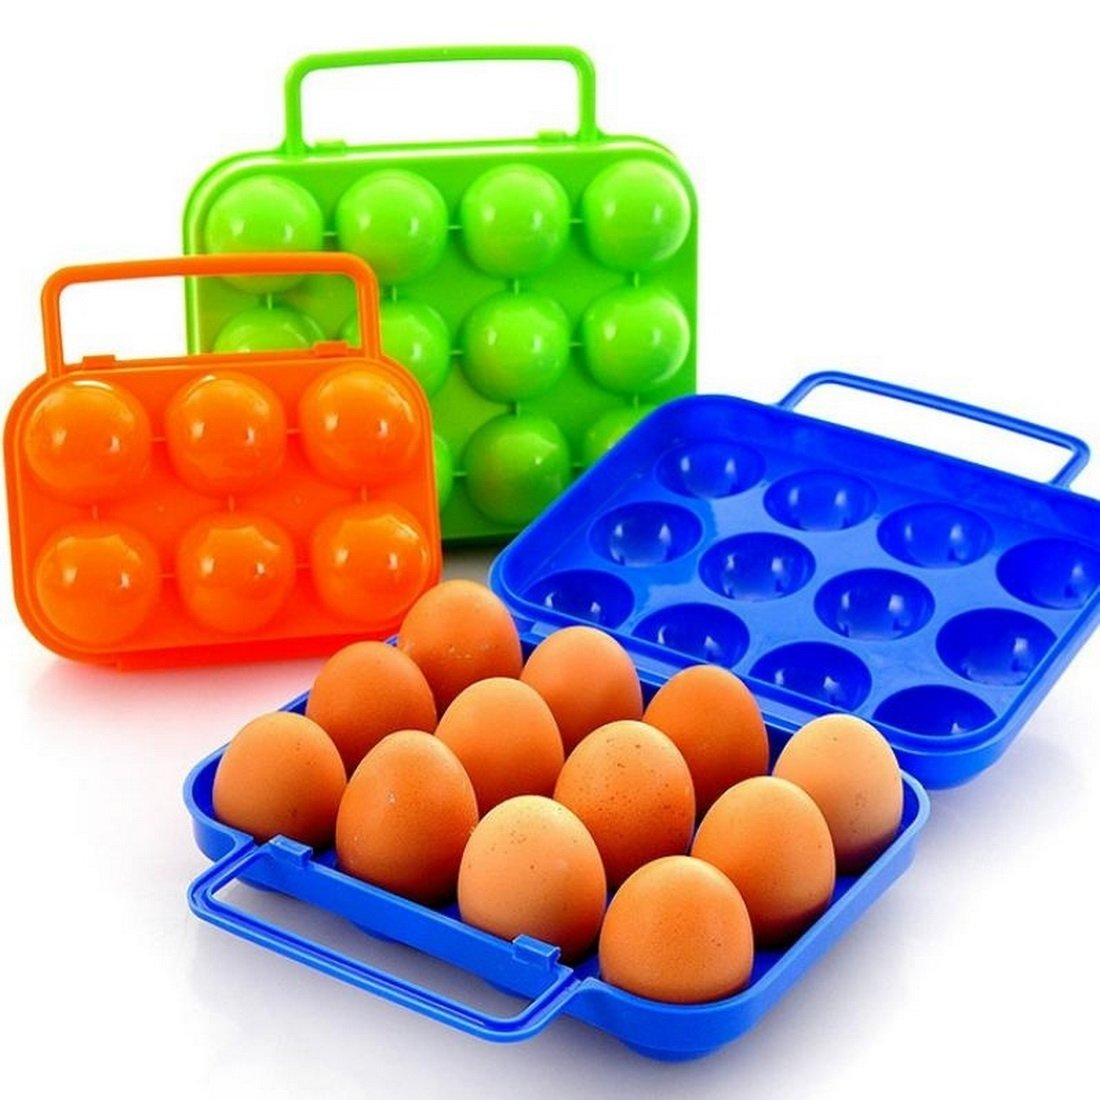 Loweryeah 6/12 Eggs Plastic Folding Eggs Carrier Portable Eggs Storage Holder for Pinic Container by Loweryeah (Image #2)